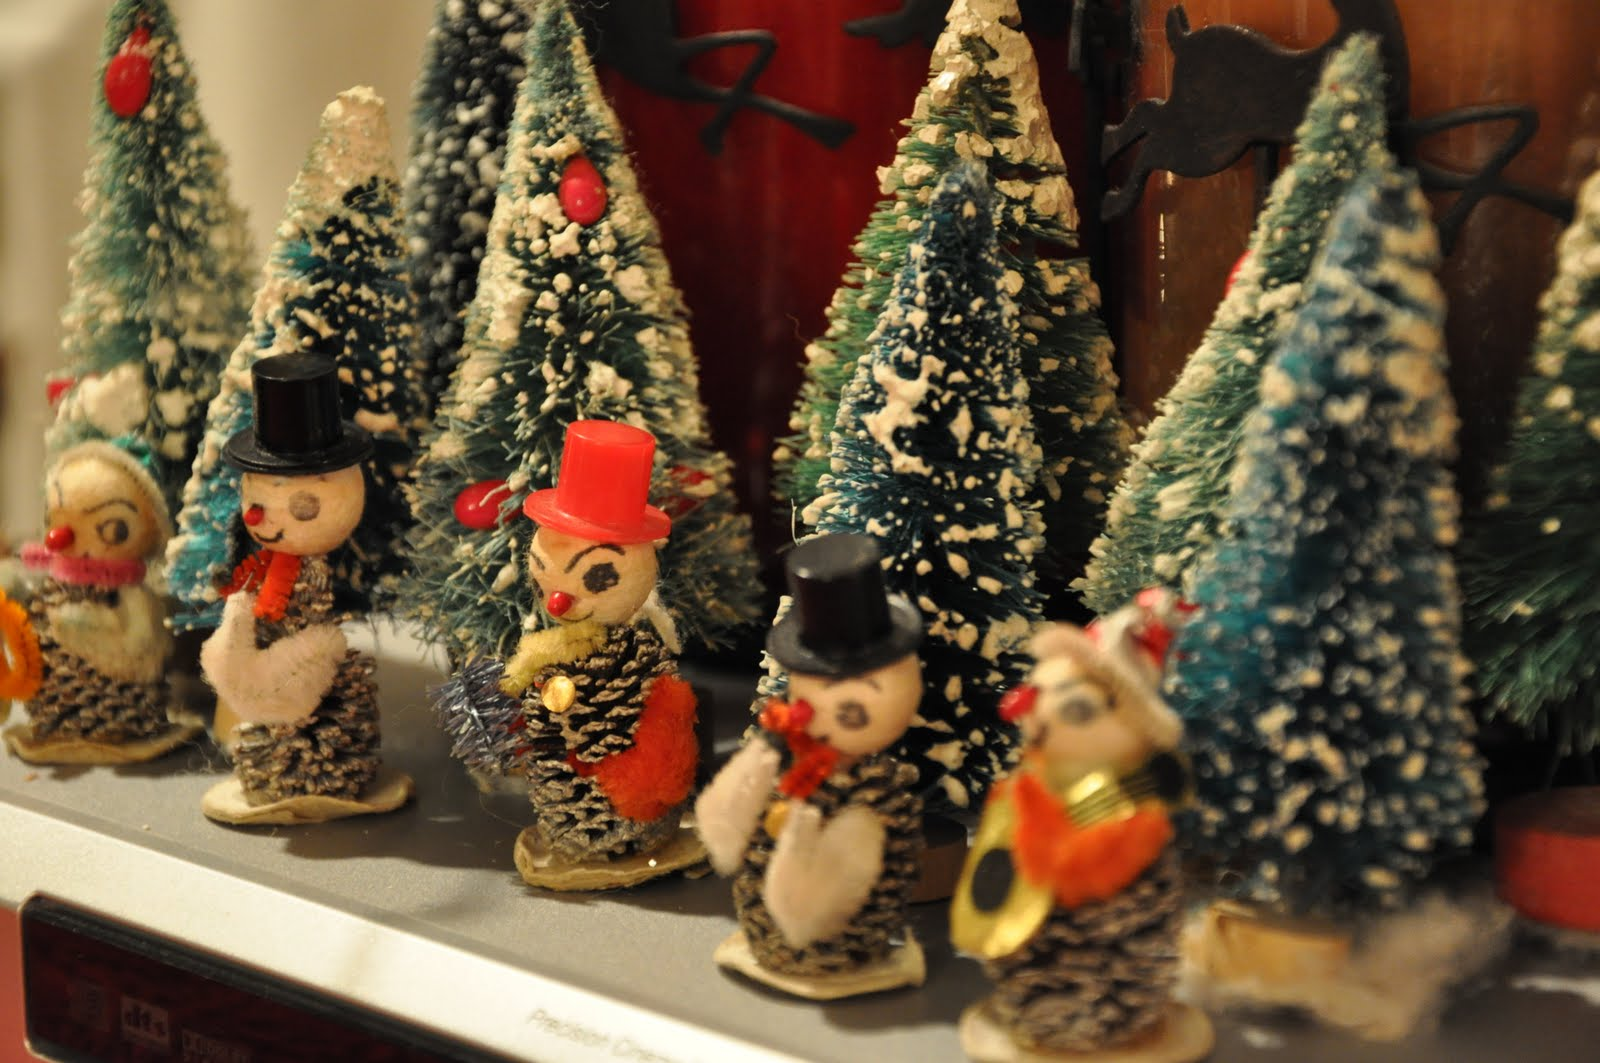 ... Studios Musings: Vintage Wednesday: Vintage Christmas Decorations